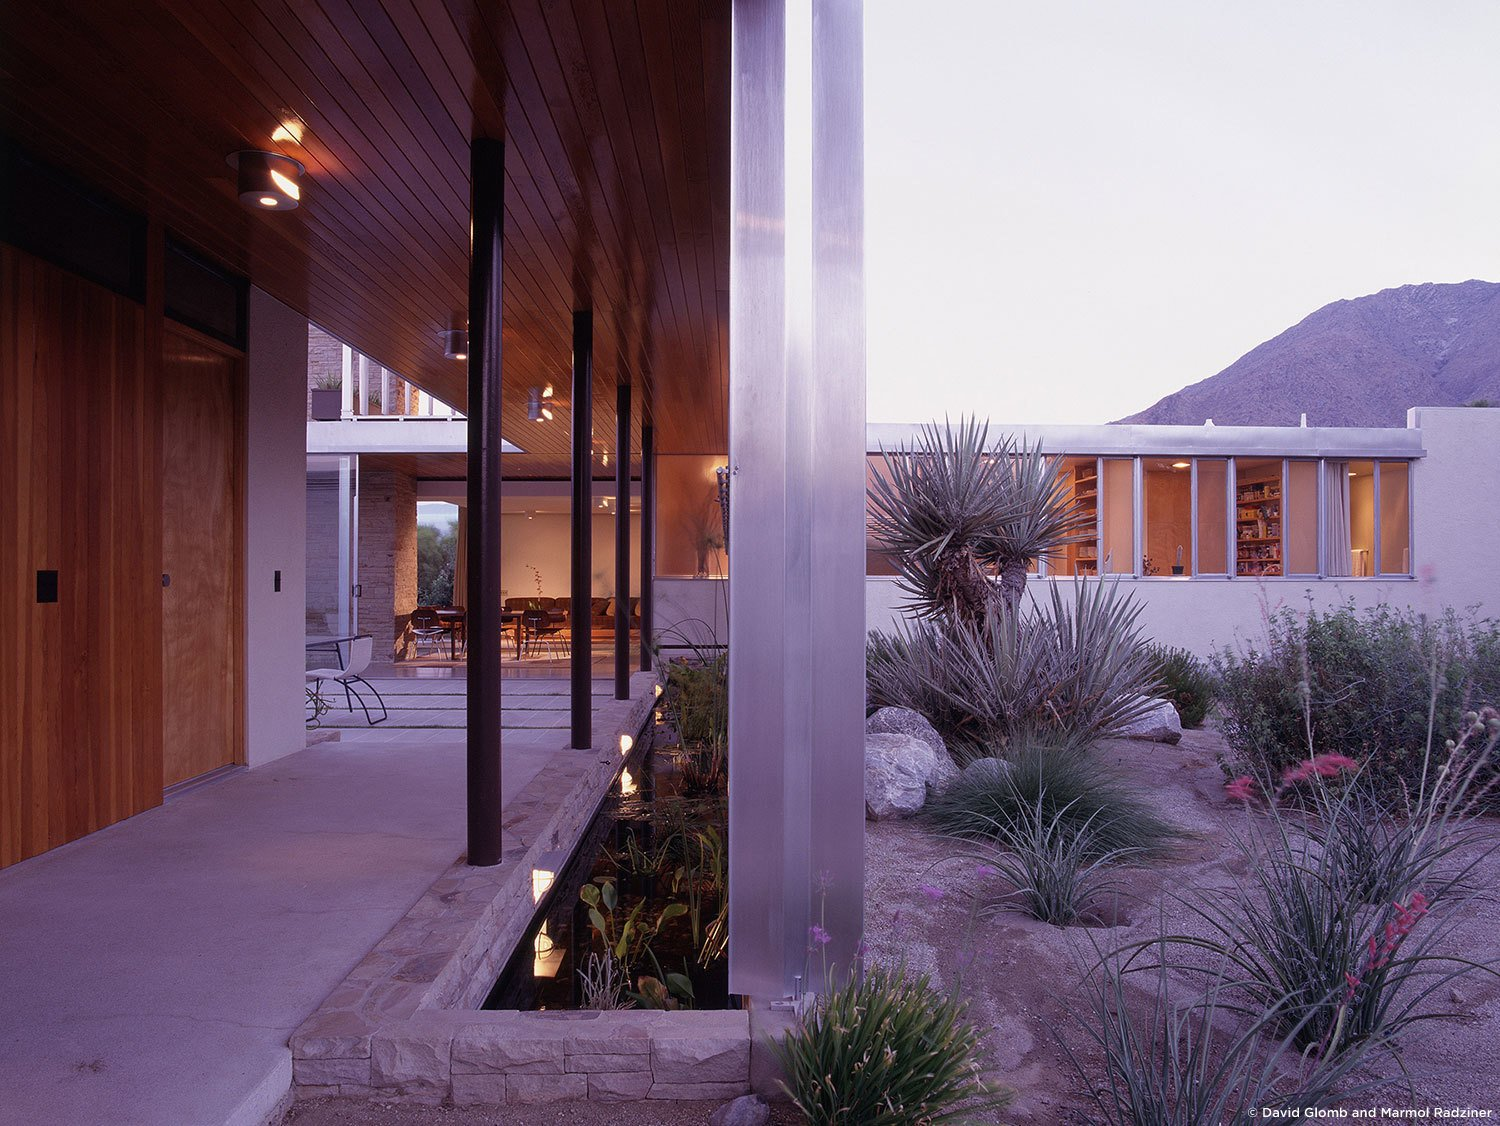 #KaufmannHouse #modern #midcentury #Nuetra #1946 #restoration #archival #original #details #lighting #exterior #outside #outdoors #wood #landscape #plants #PalmSprings #California #MarmolRadziner   Kaufmann House by Marmol Radziner